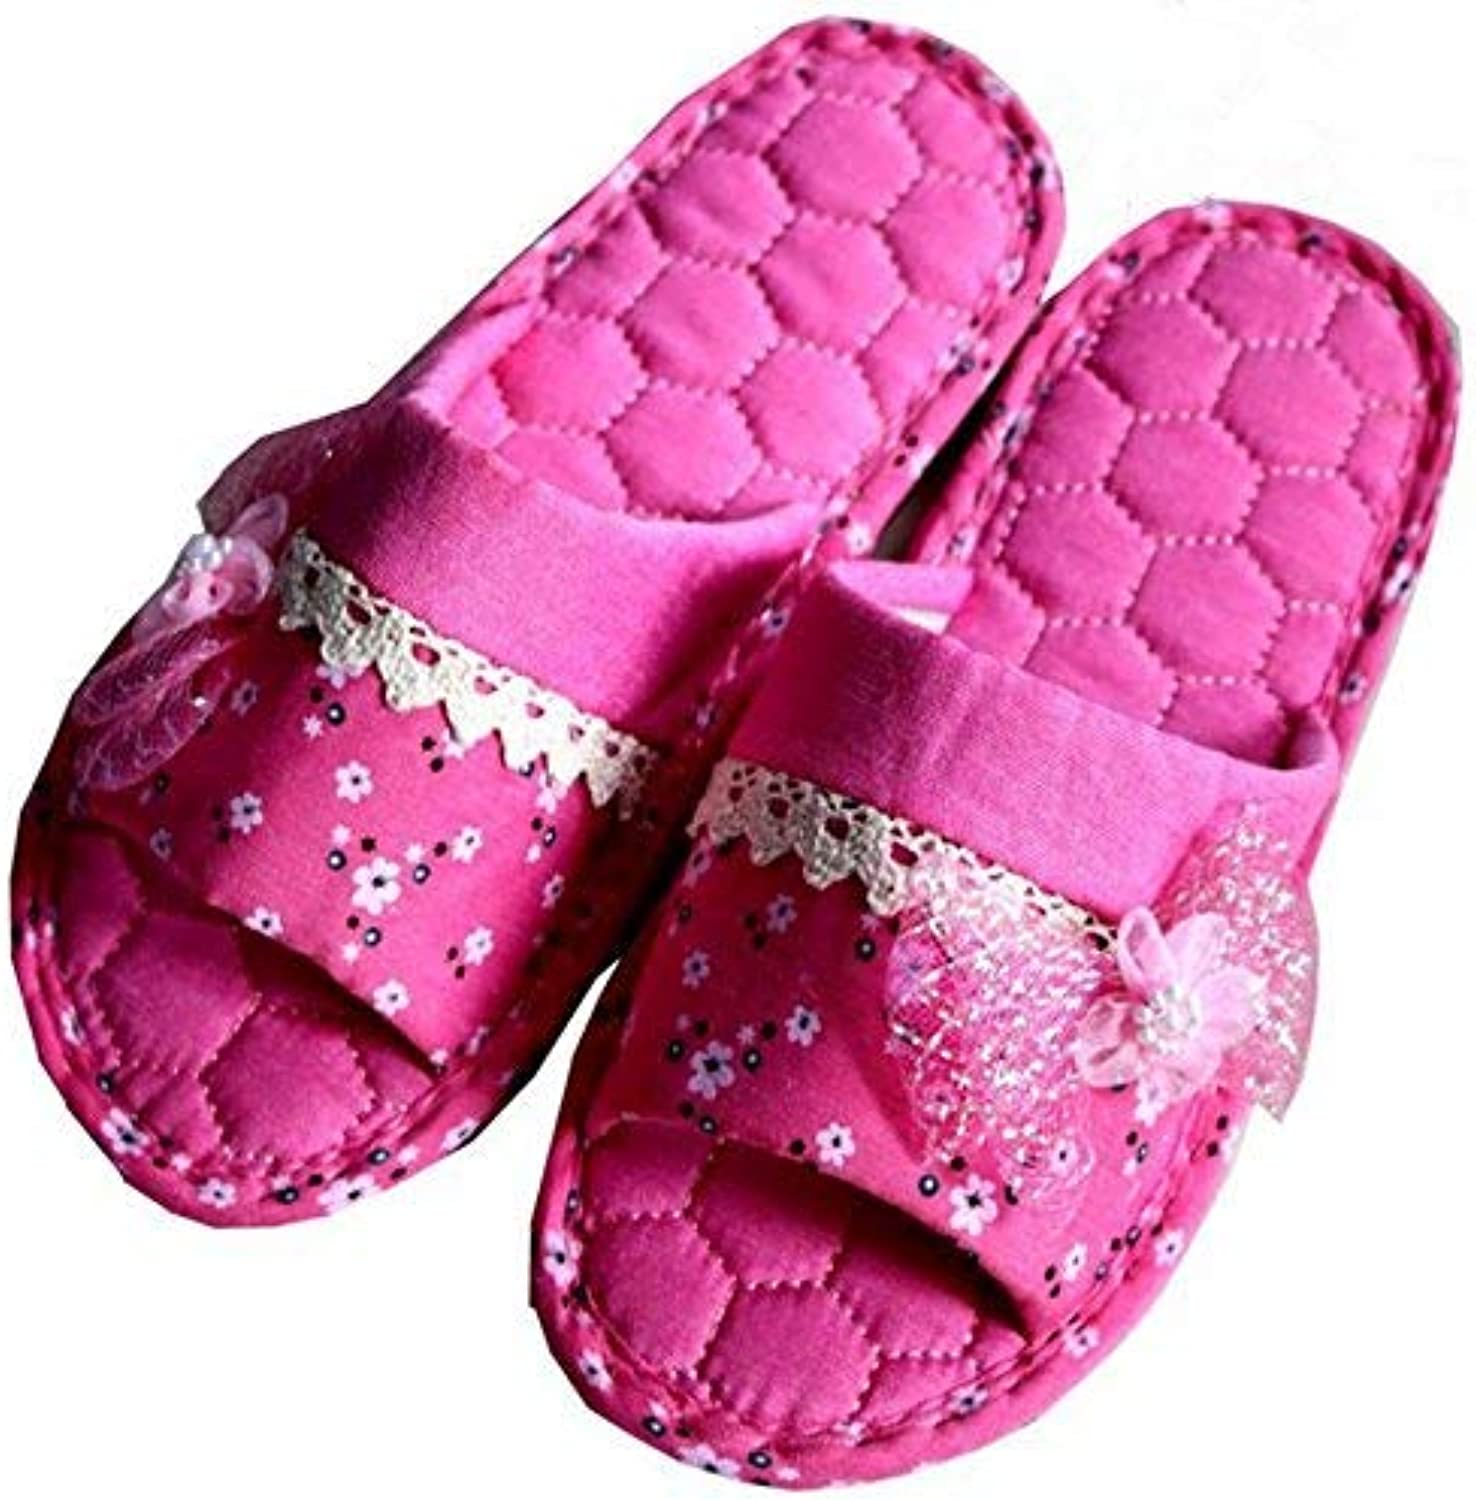 So8ooa Lady Slippers Ladies Fashion Home Interior Slip Casual Slippers Red Pink Purple Keep Warm Slippers Quality for Women